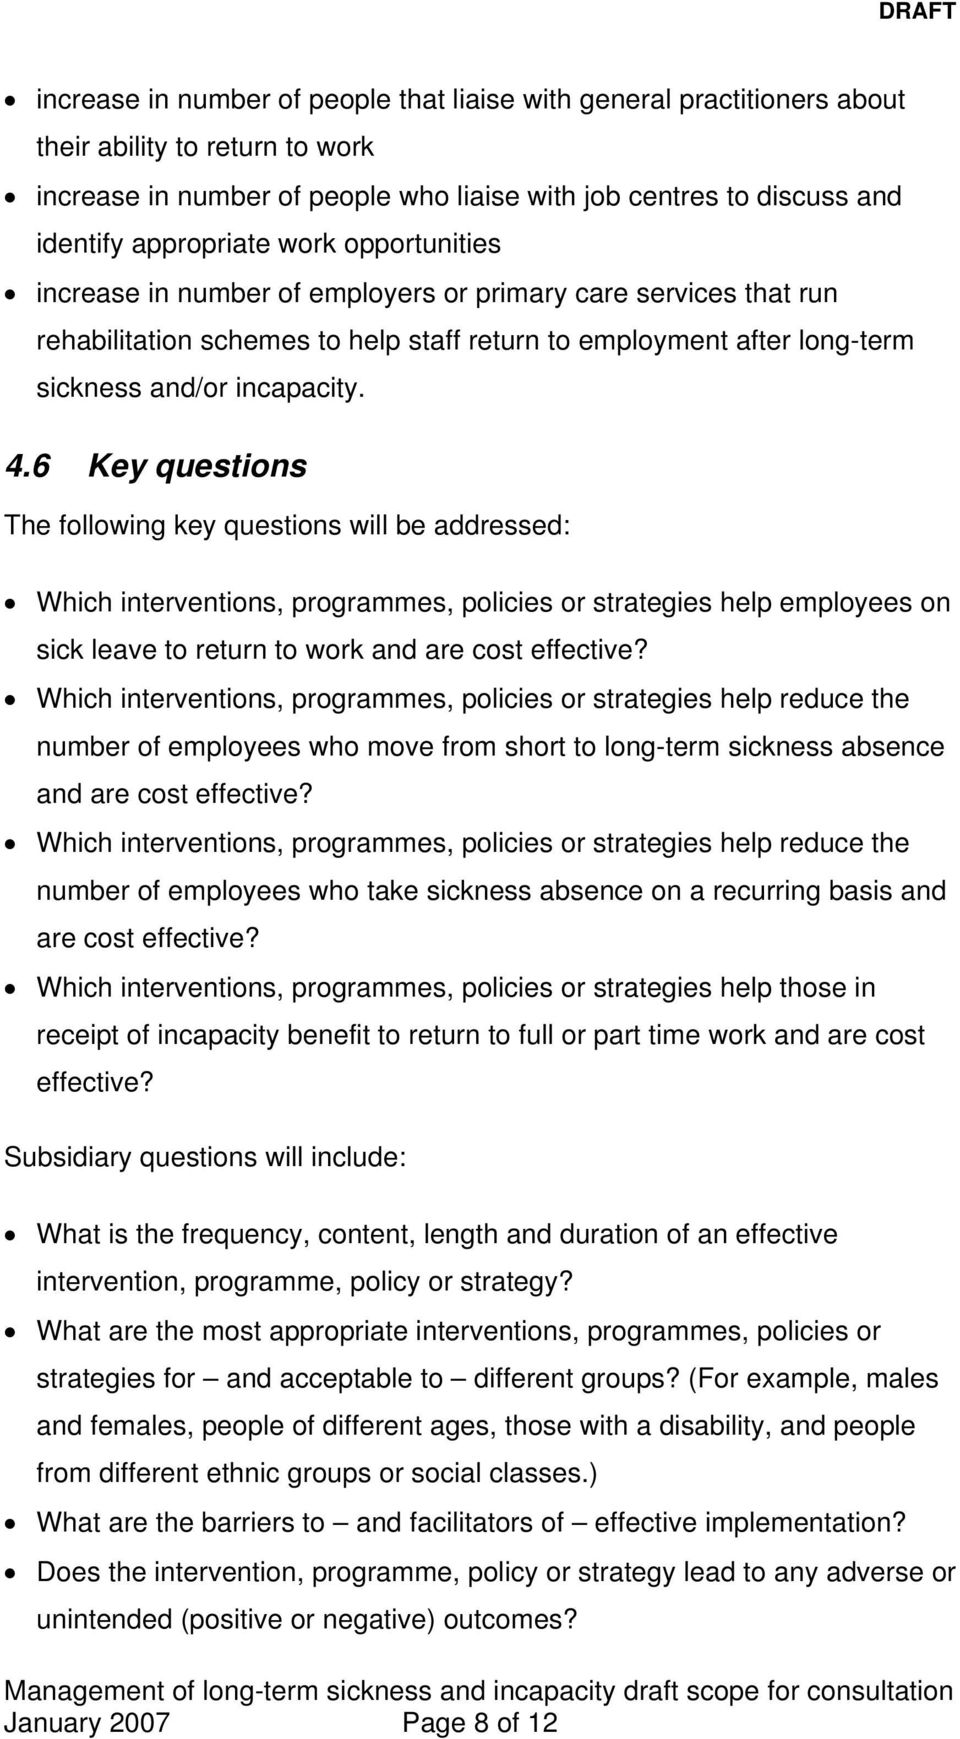 6 Key questions The following key questions will be addressed: Which interventions, programmes, policies or strategies help employees on sick leave to return to work and are cost effective?